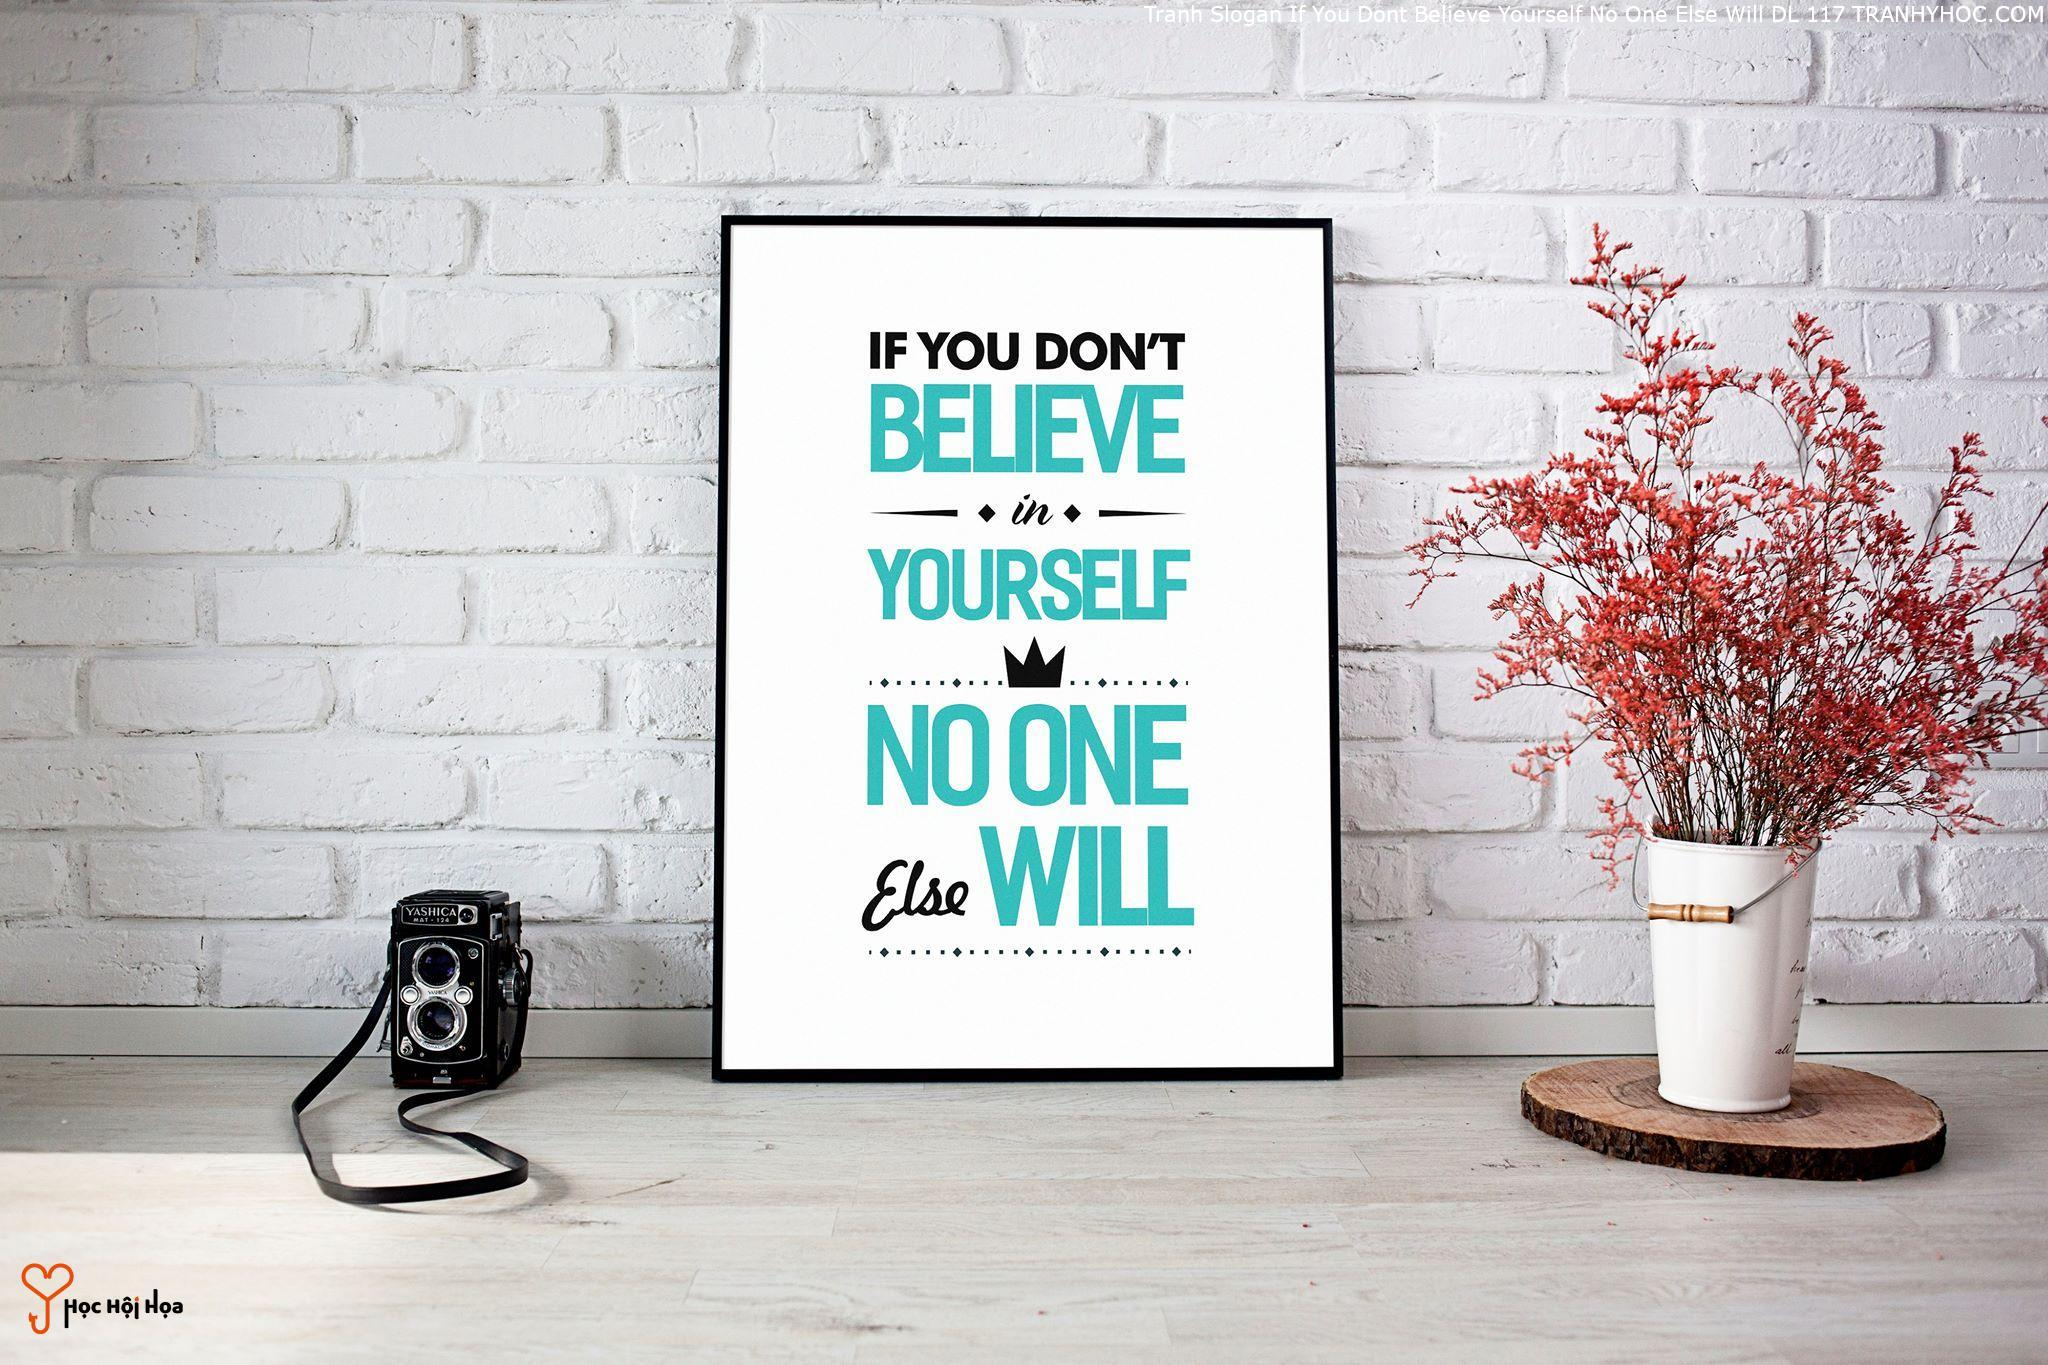 Tranh Slogan If You Dont Believe Yourself No One Else Will DL 117